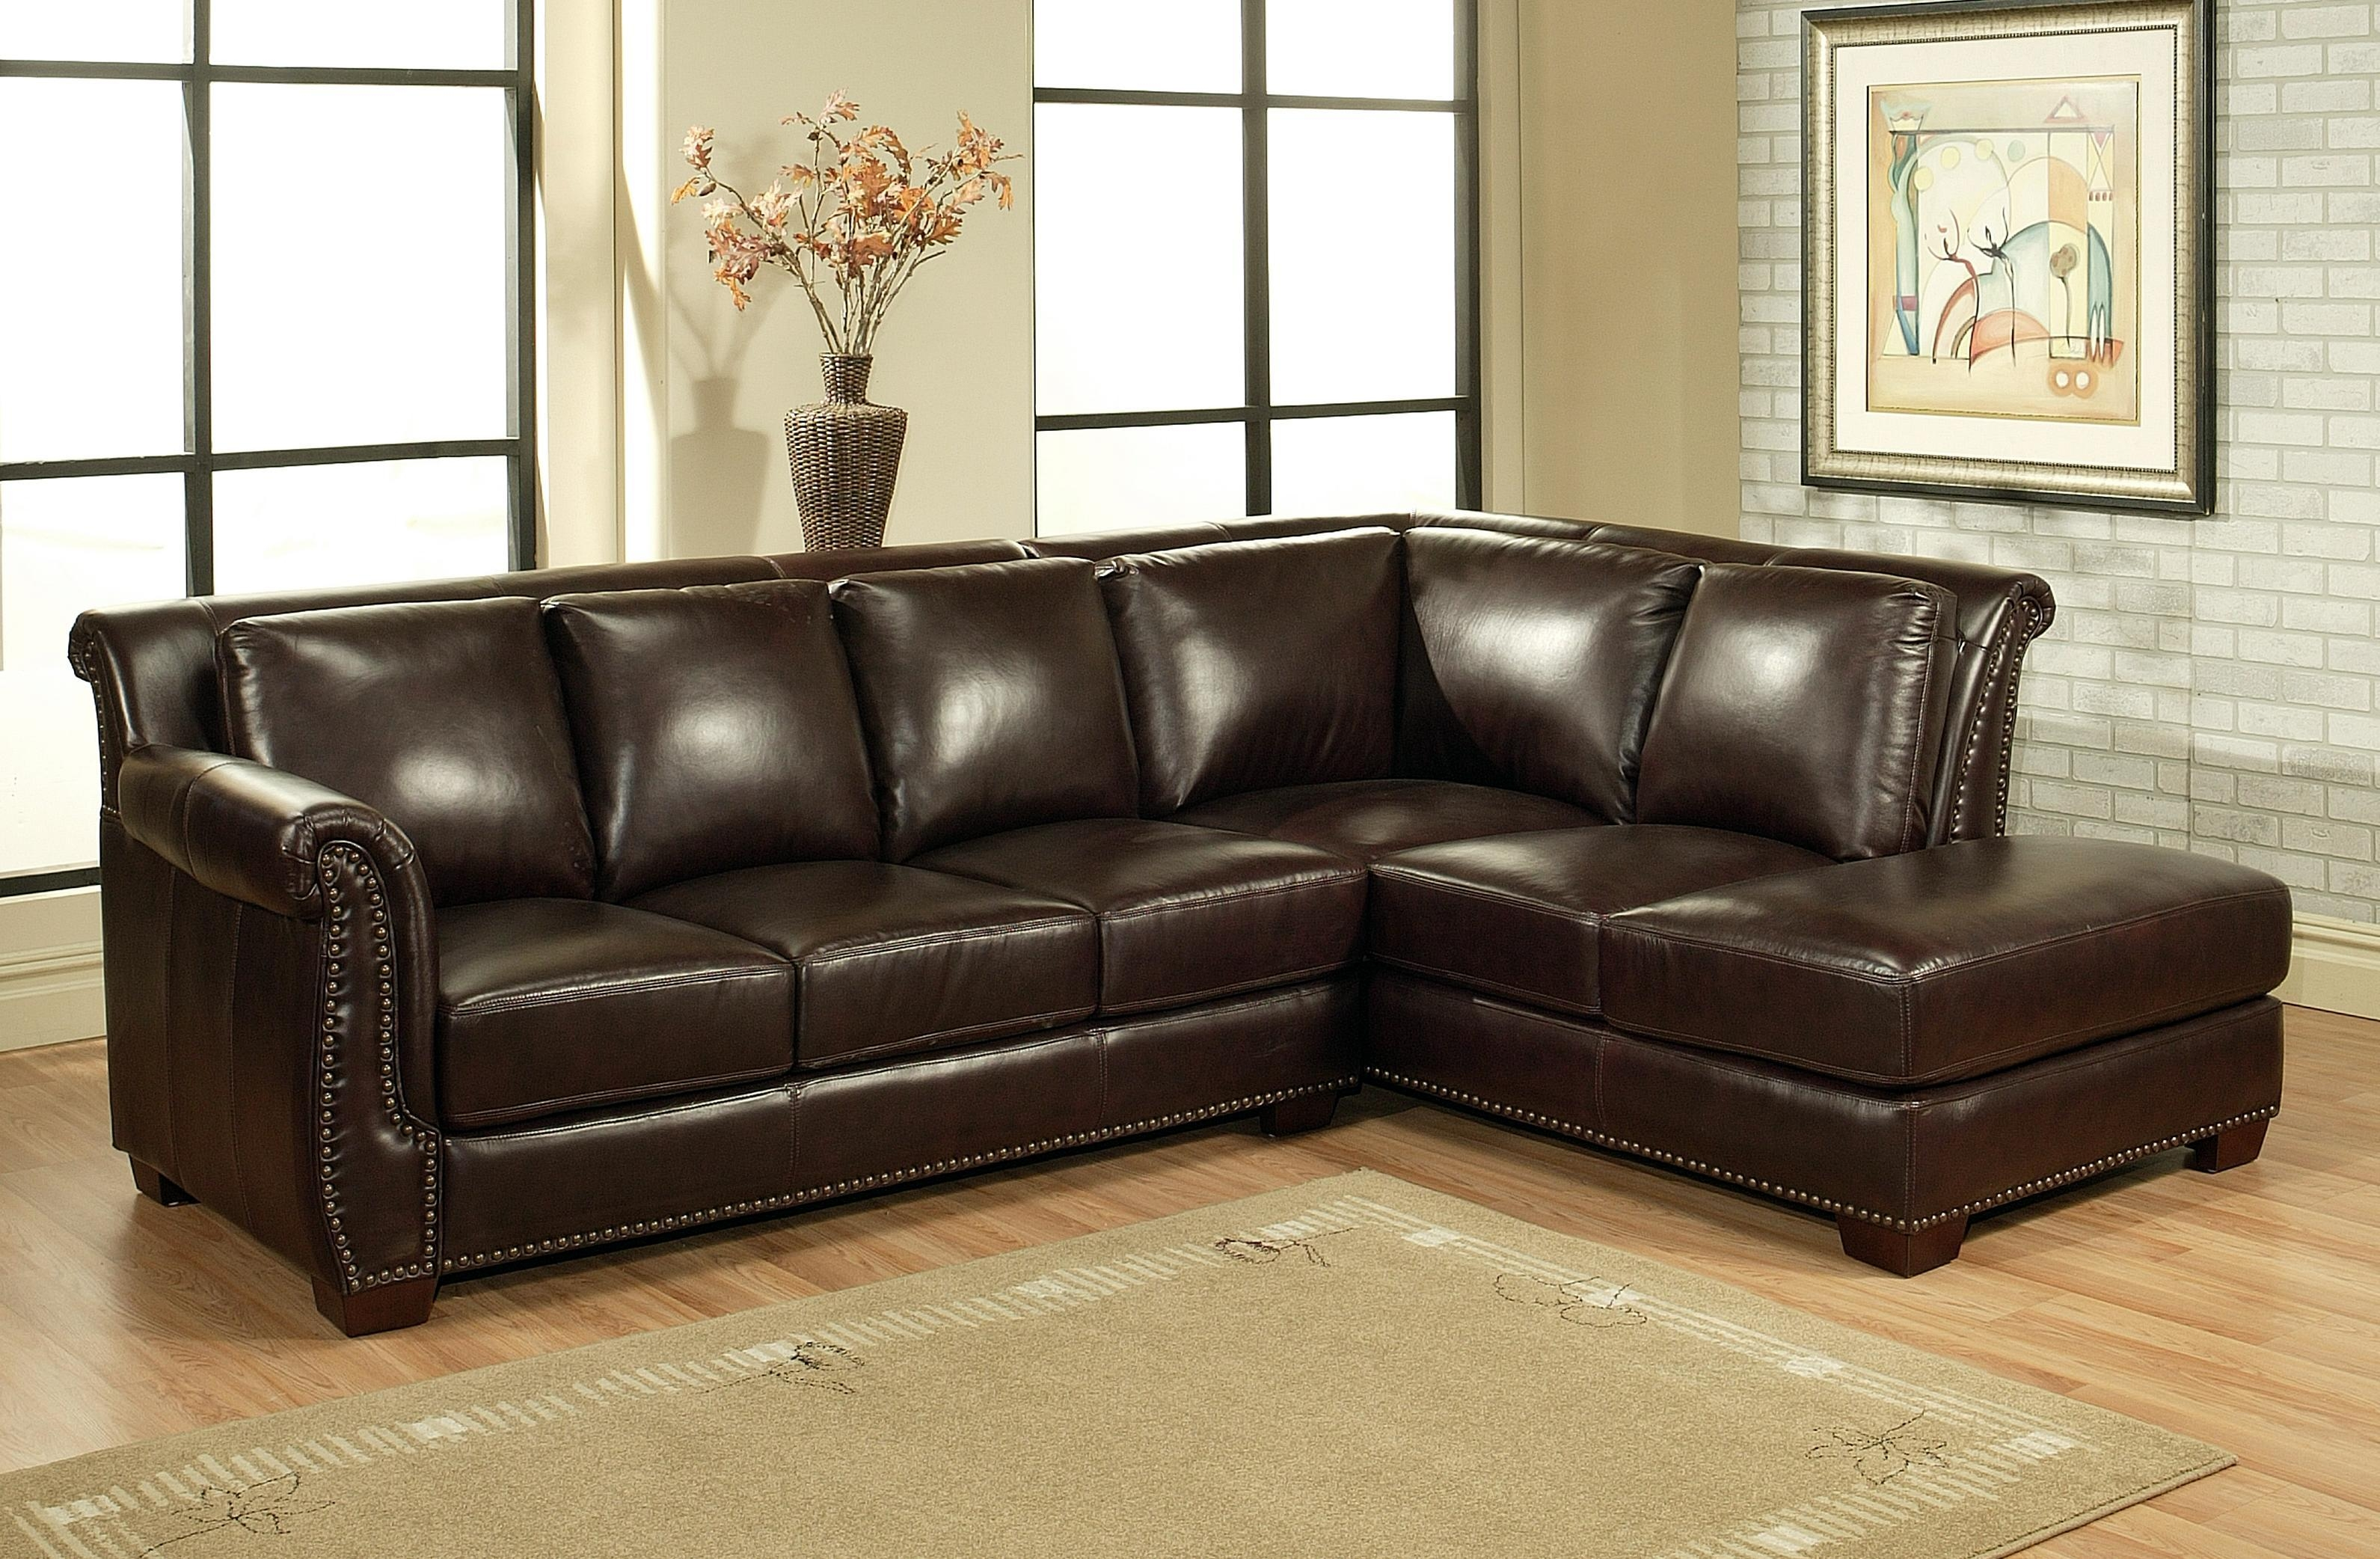 Furniture: Thomasville Furniture Nj | Thomasville Sofa Pertaining To Thomasville Leather Sectionals (View 19 of 20)